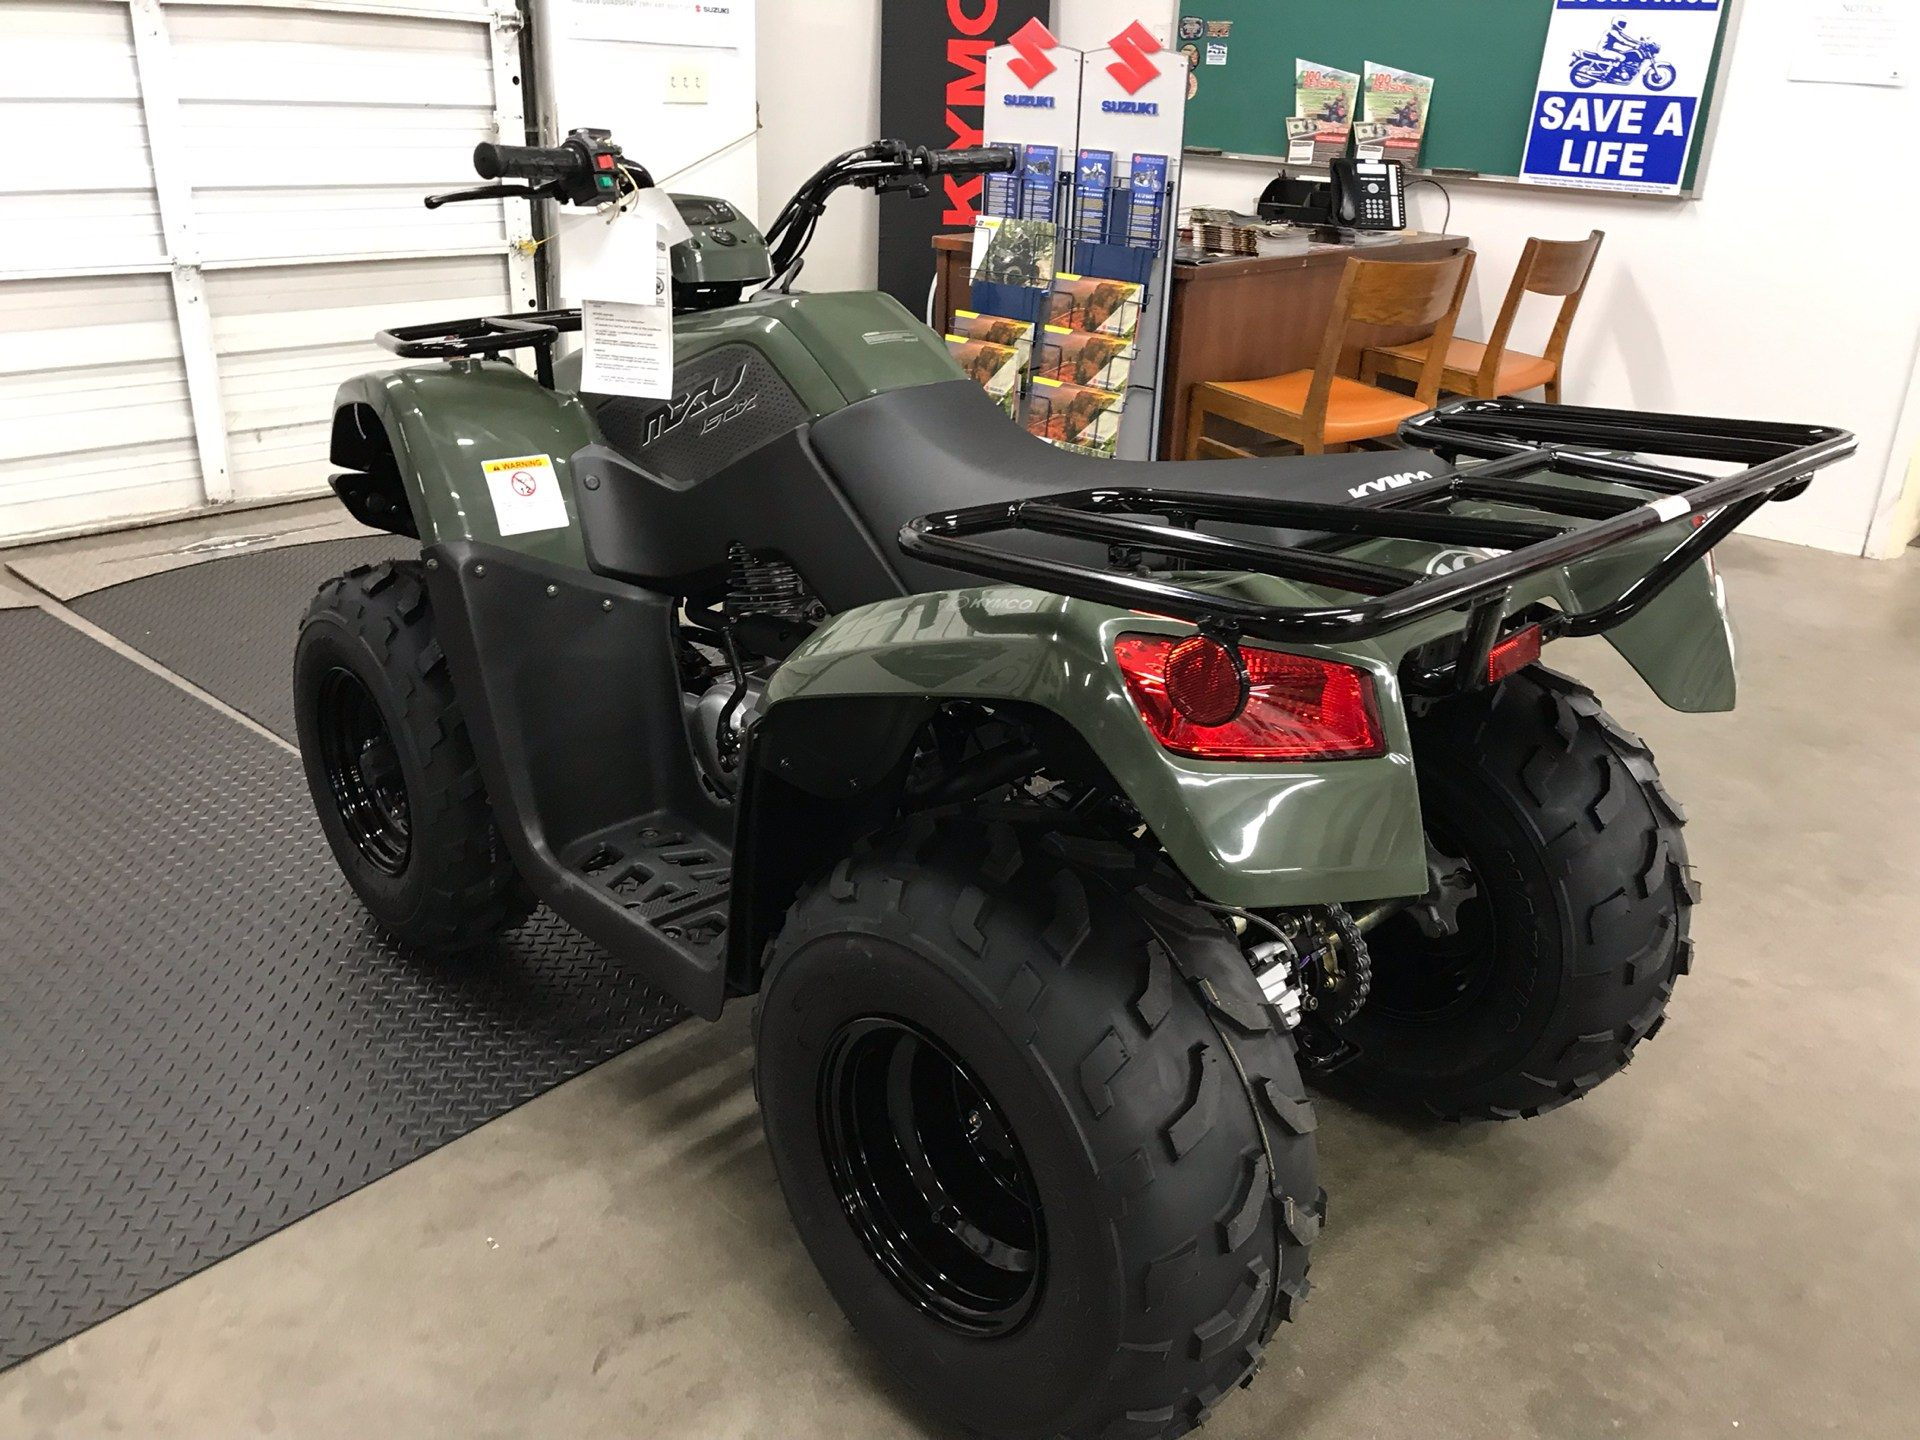 2019 Kymco MXU 150X in Sanford, North Carolina - Photo 8